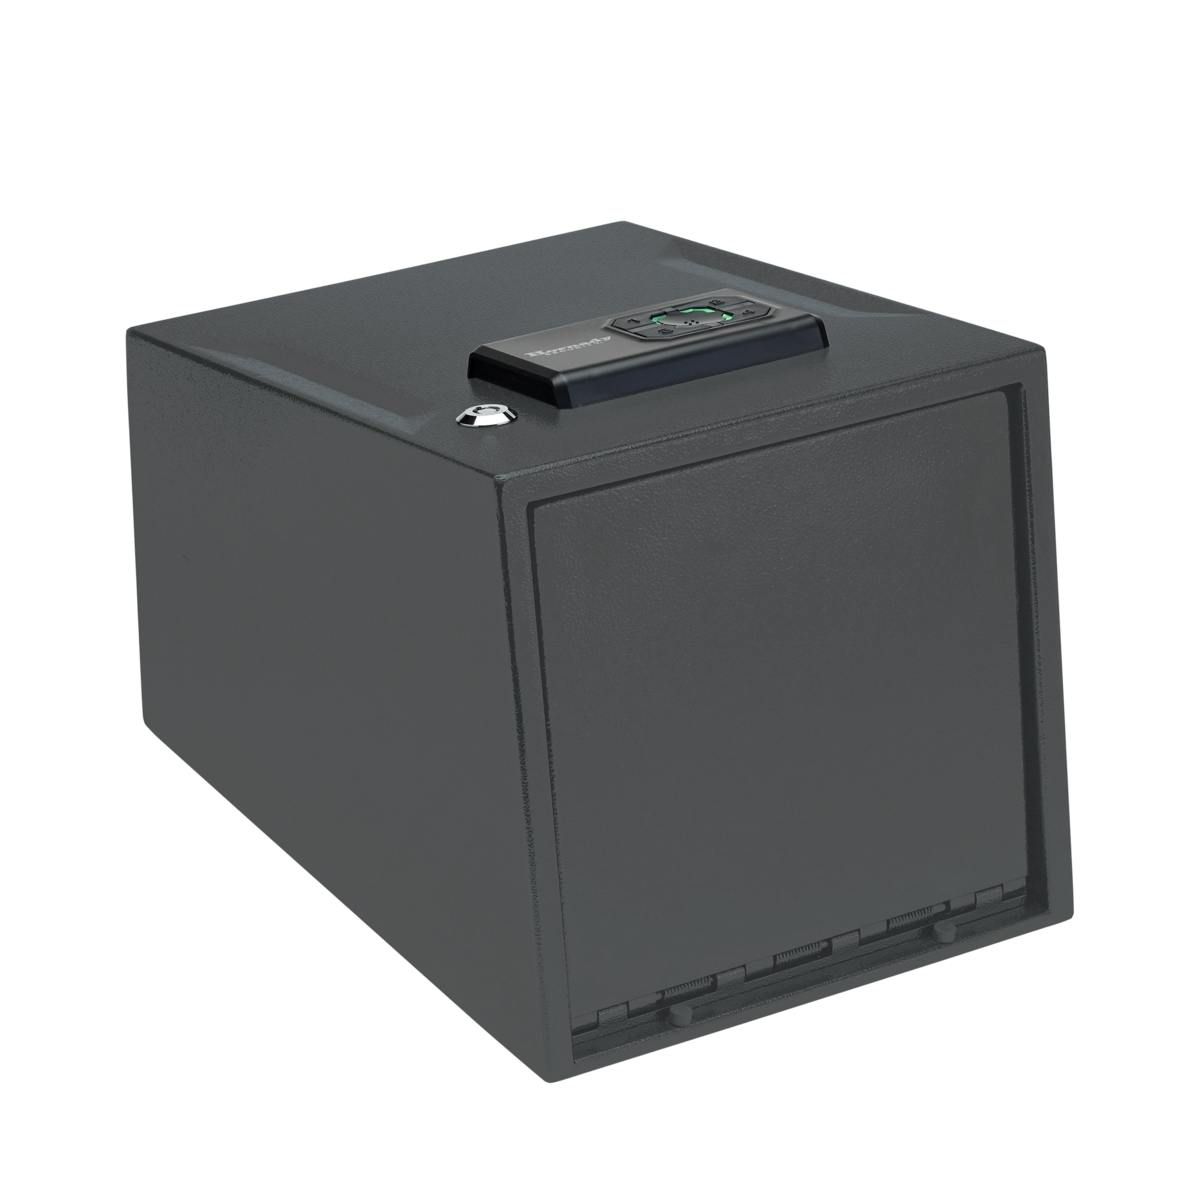 Handgun And Pistol Safes - Hornady 95430 2-Gun Keypad Vault